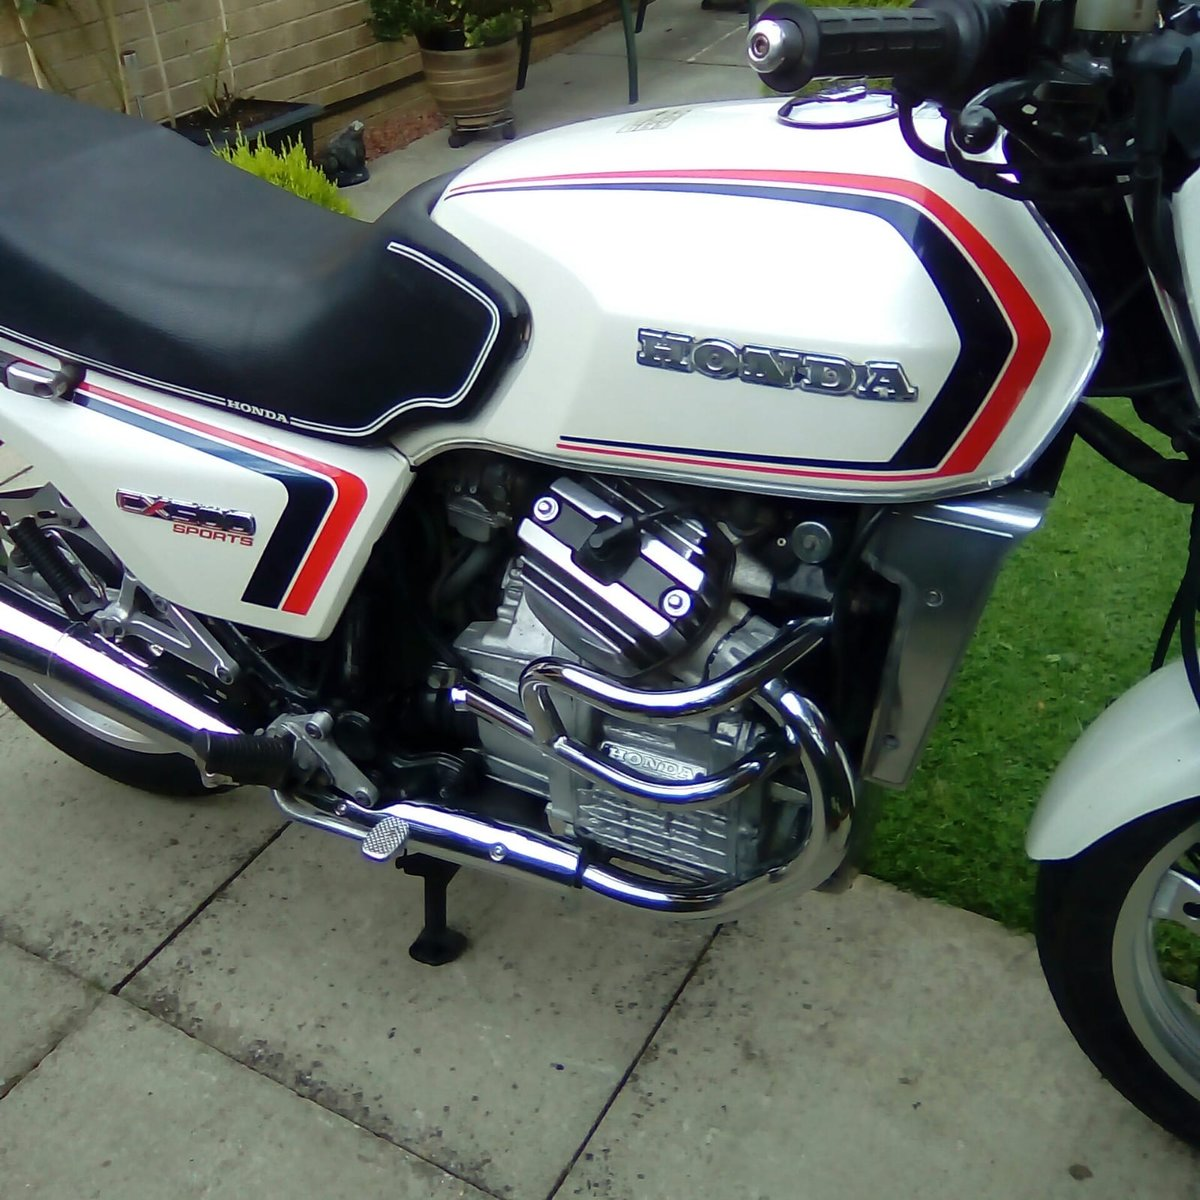 1982 Honda CX500 Eurosport Classic great condition bike SOLD (picture 2 of 6)